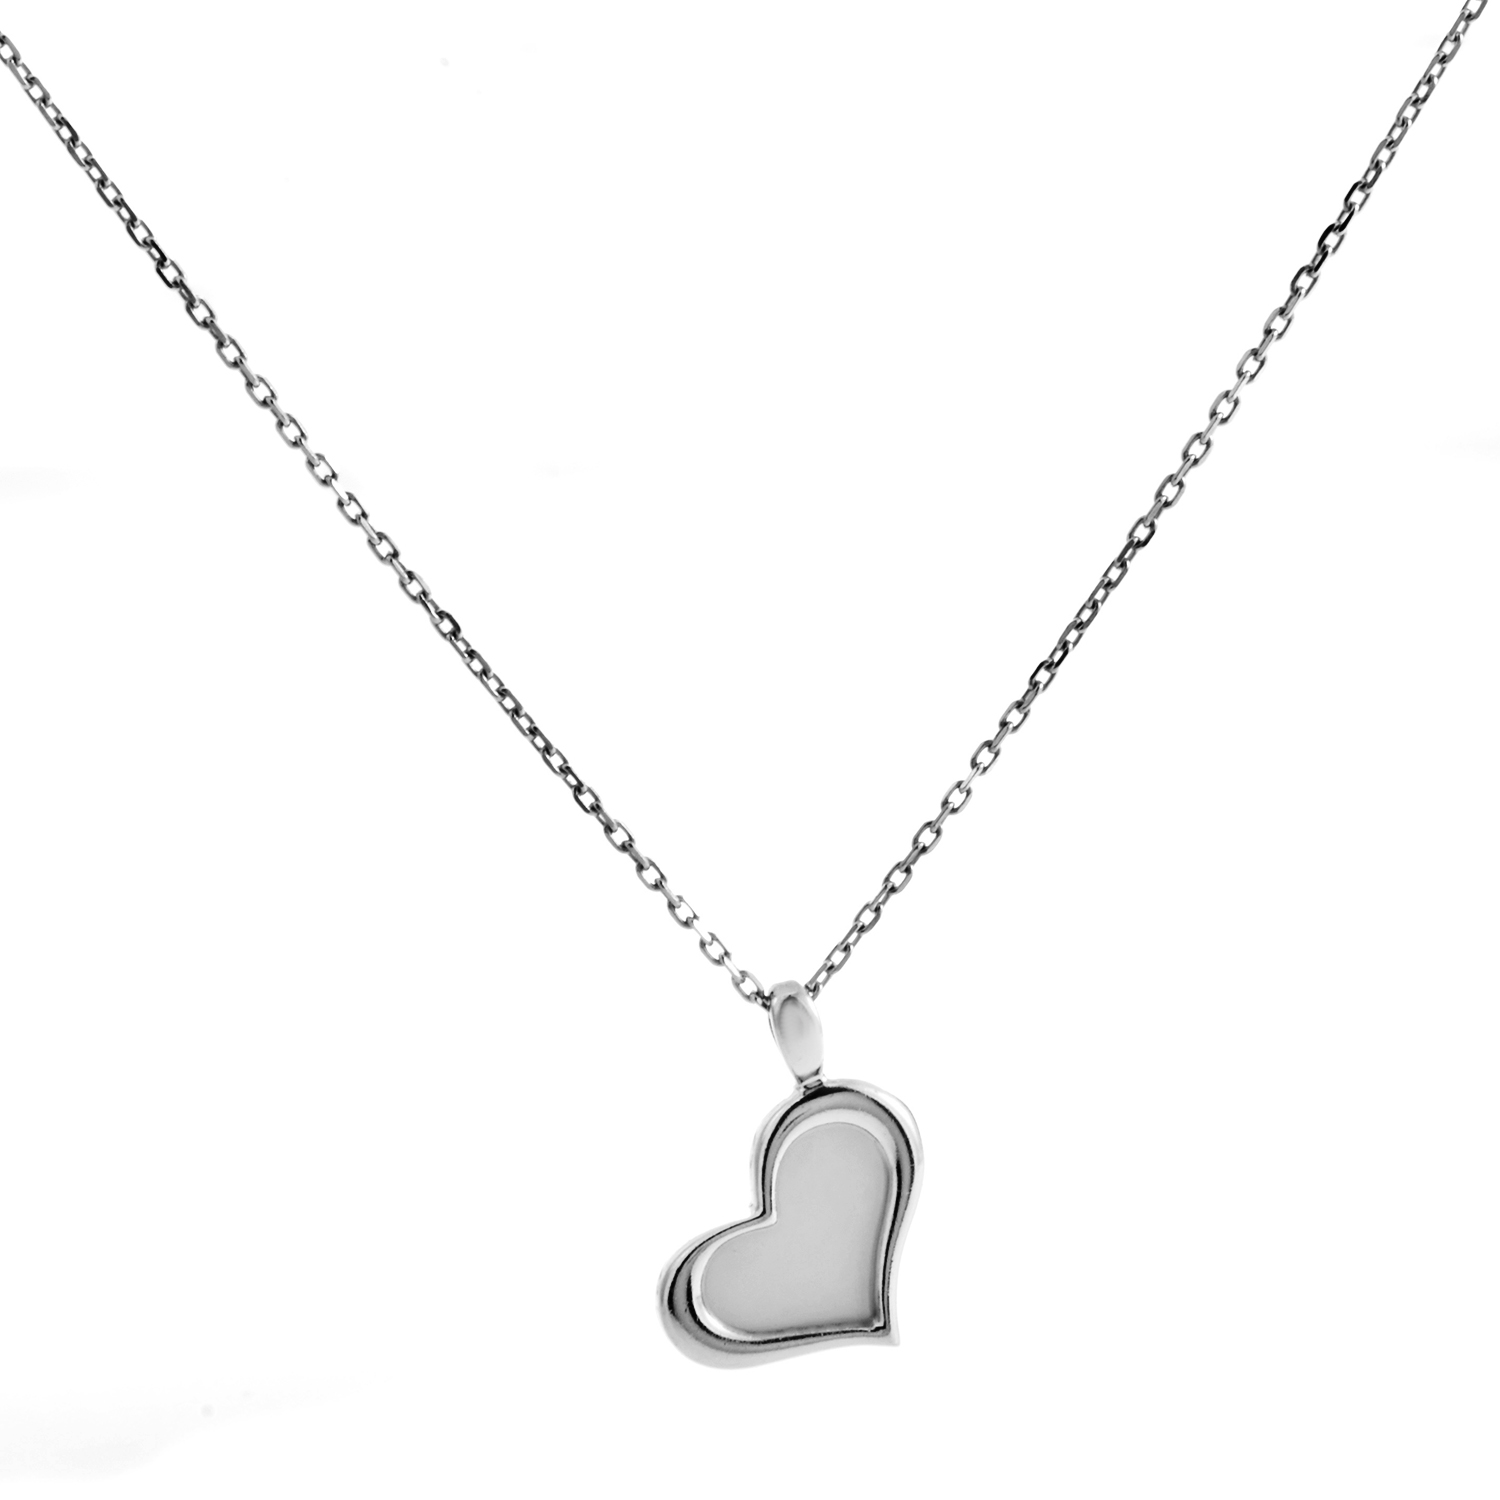 Piaget Women's 18K White Gold Mother of Pearl Heart Pendant Necklace